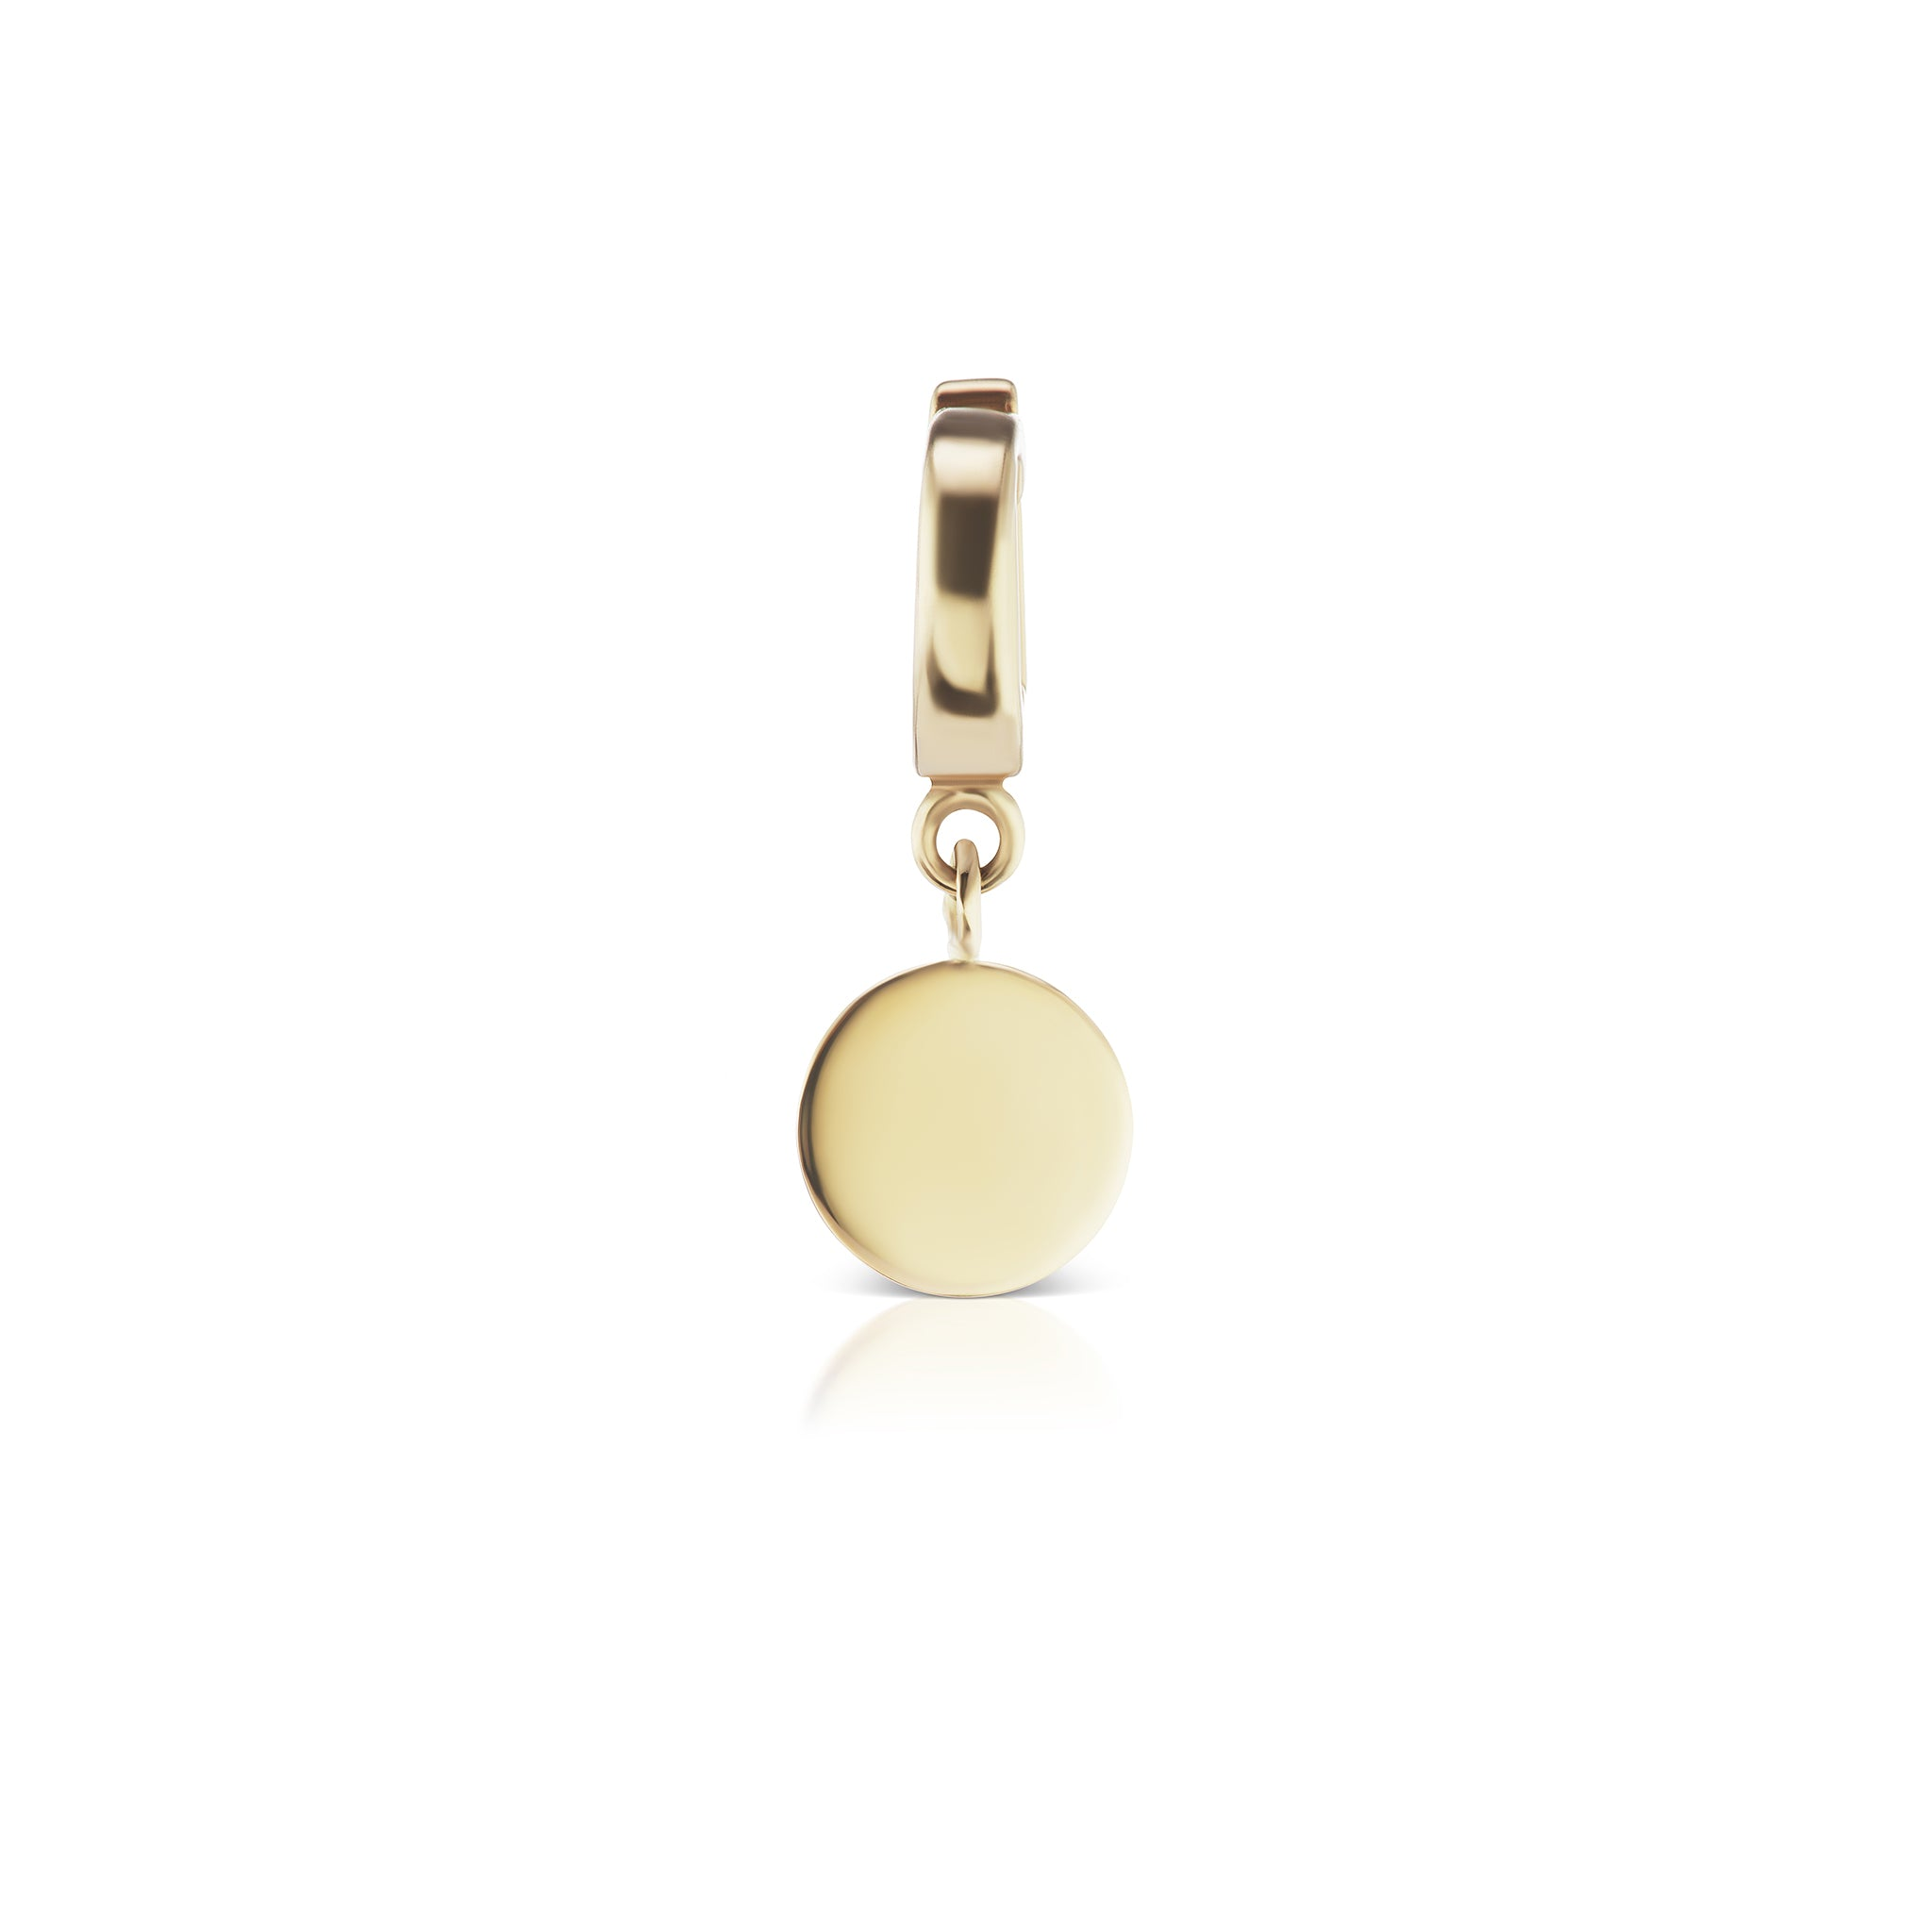 The Gold Petite Signature Charm